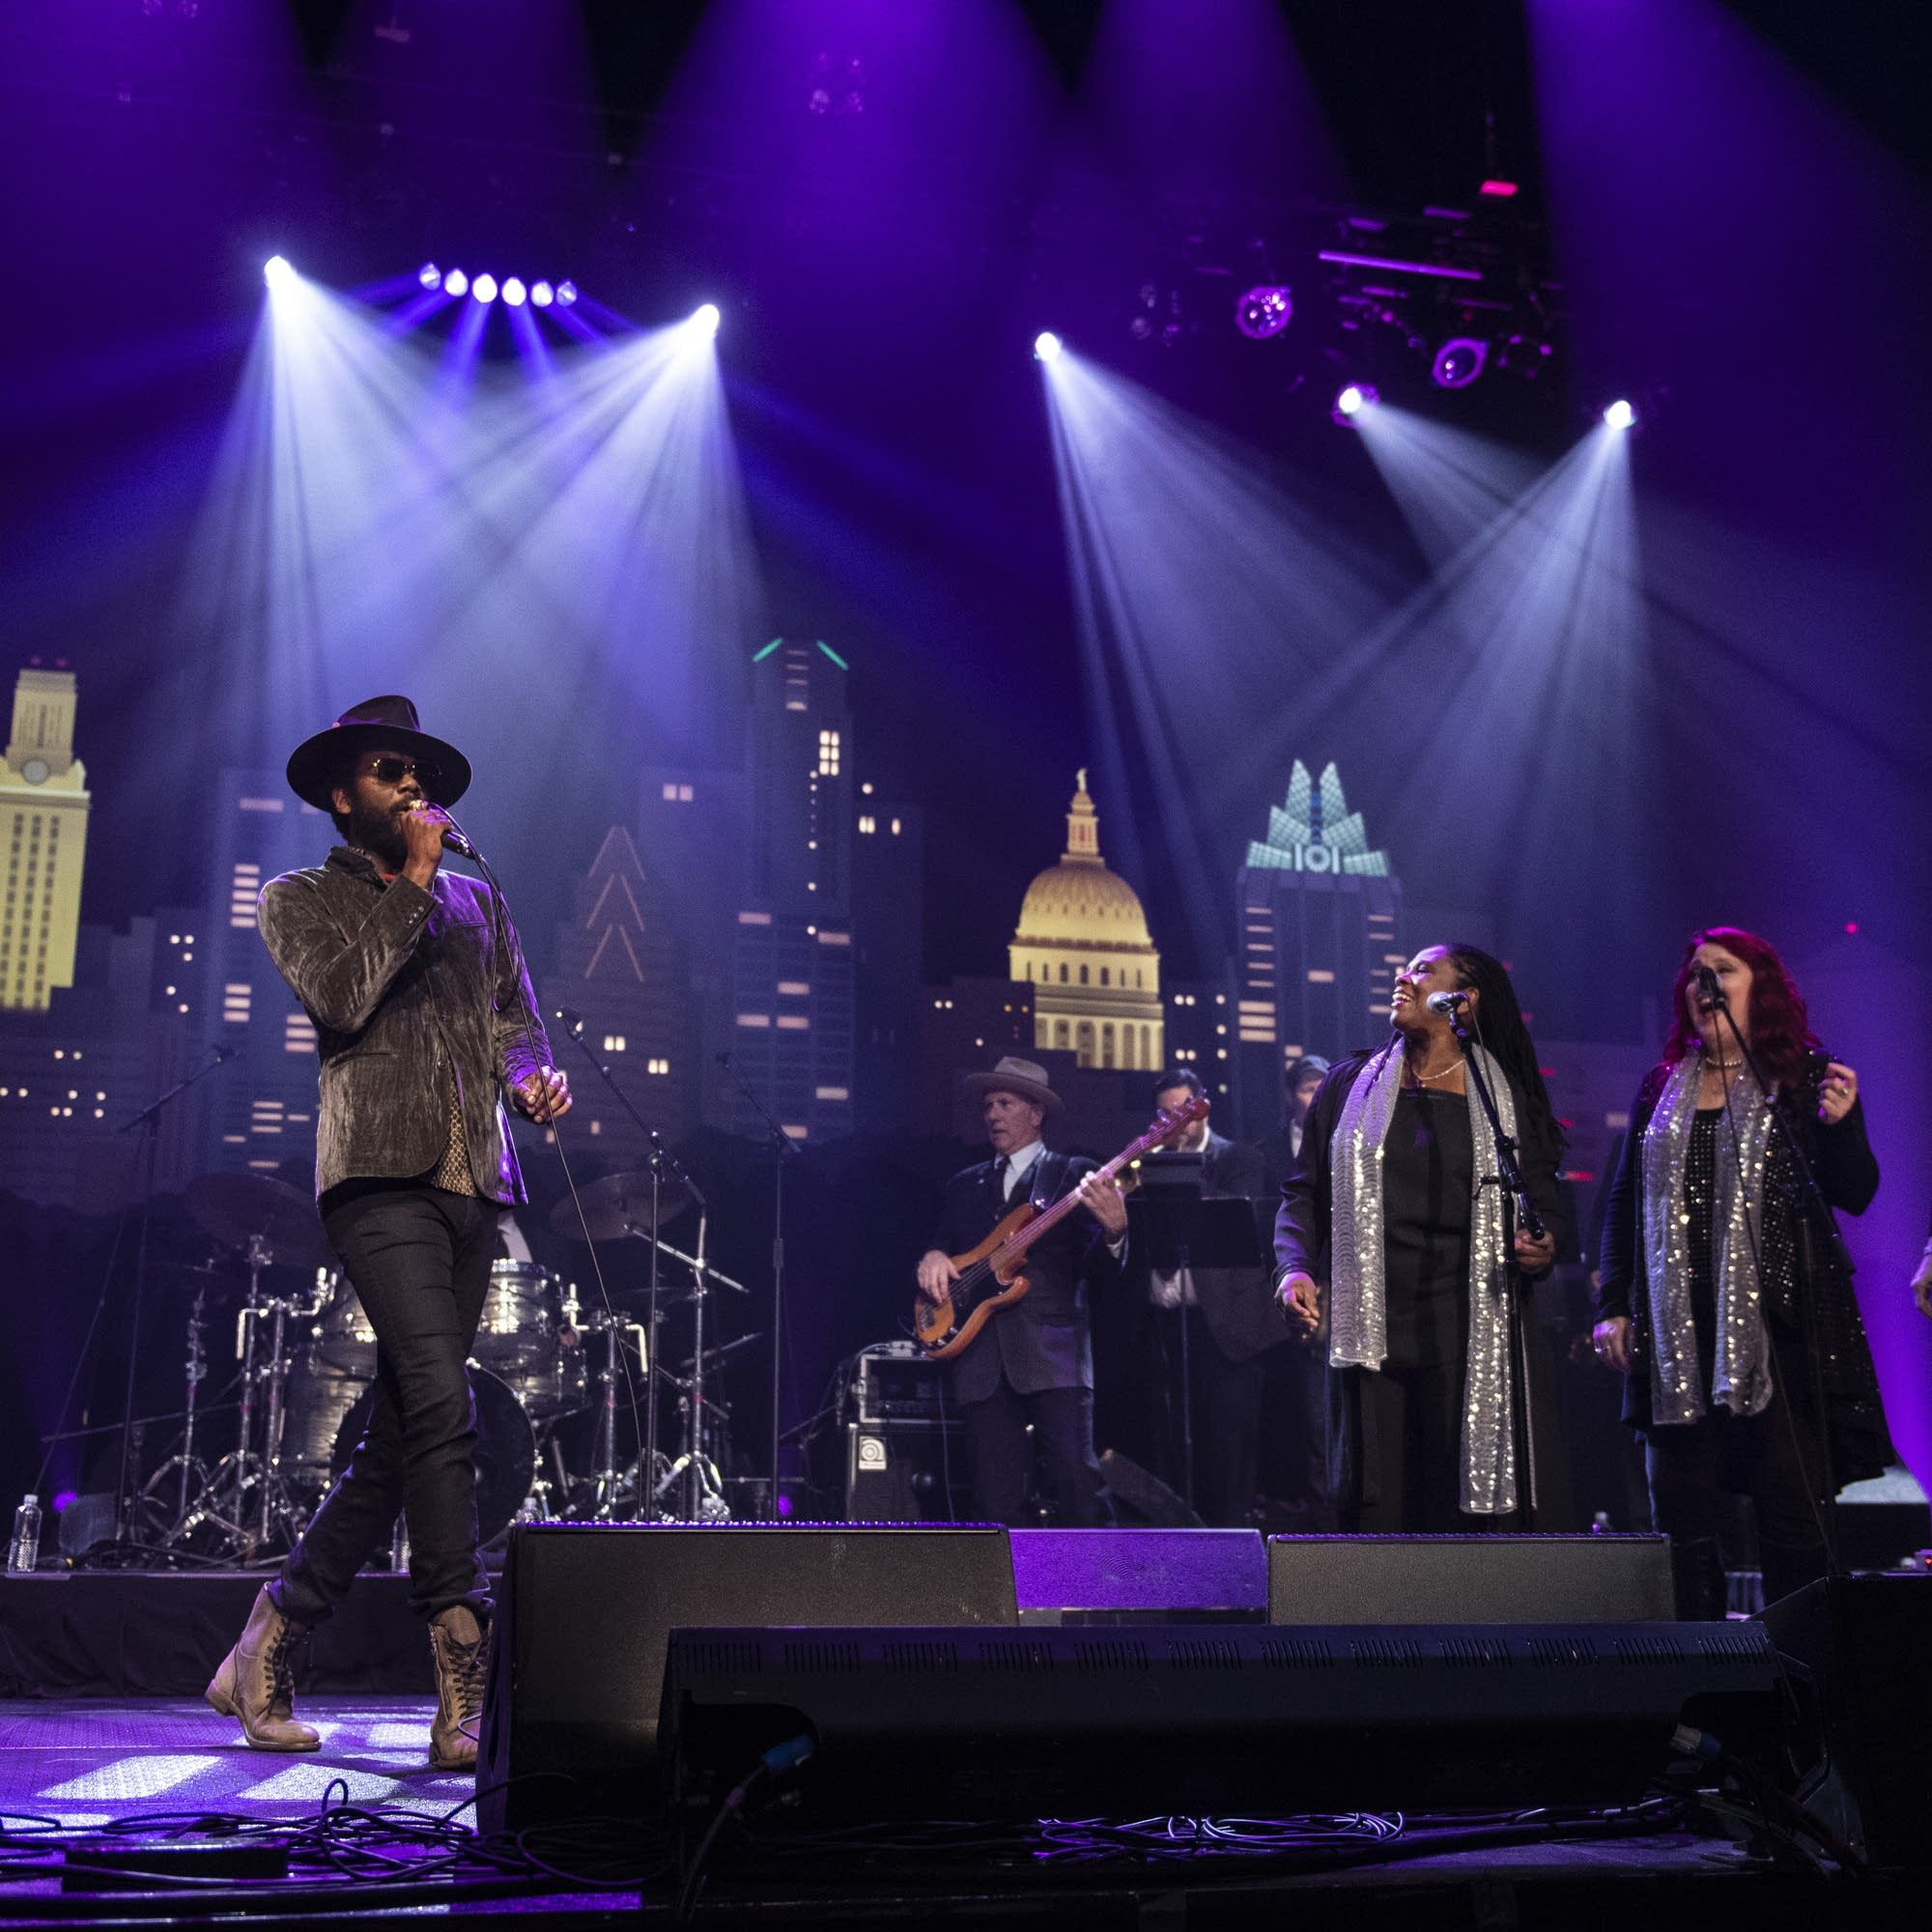 Austin City Limits Hall of Fame New Year's Special 2018